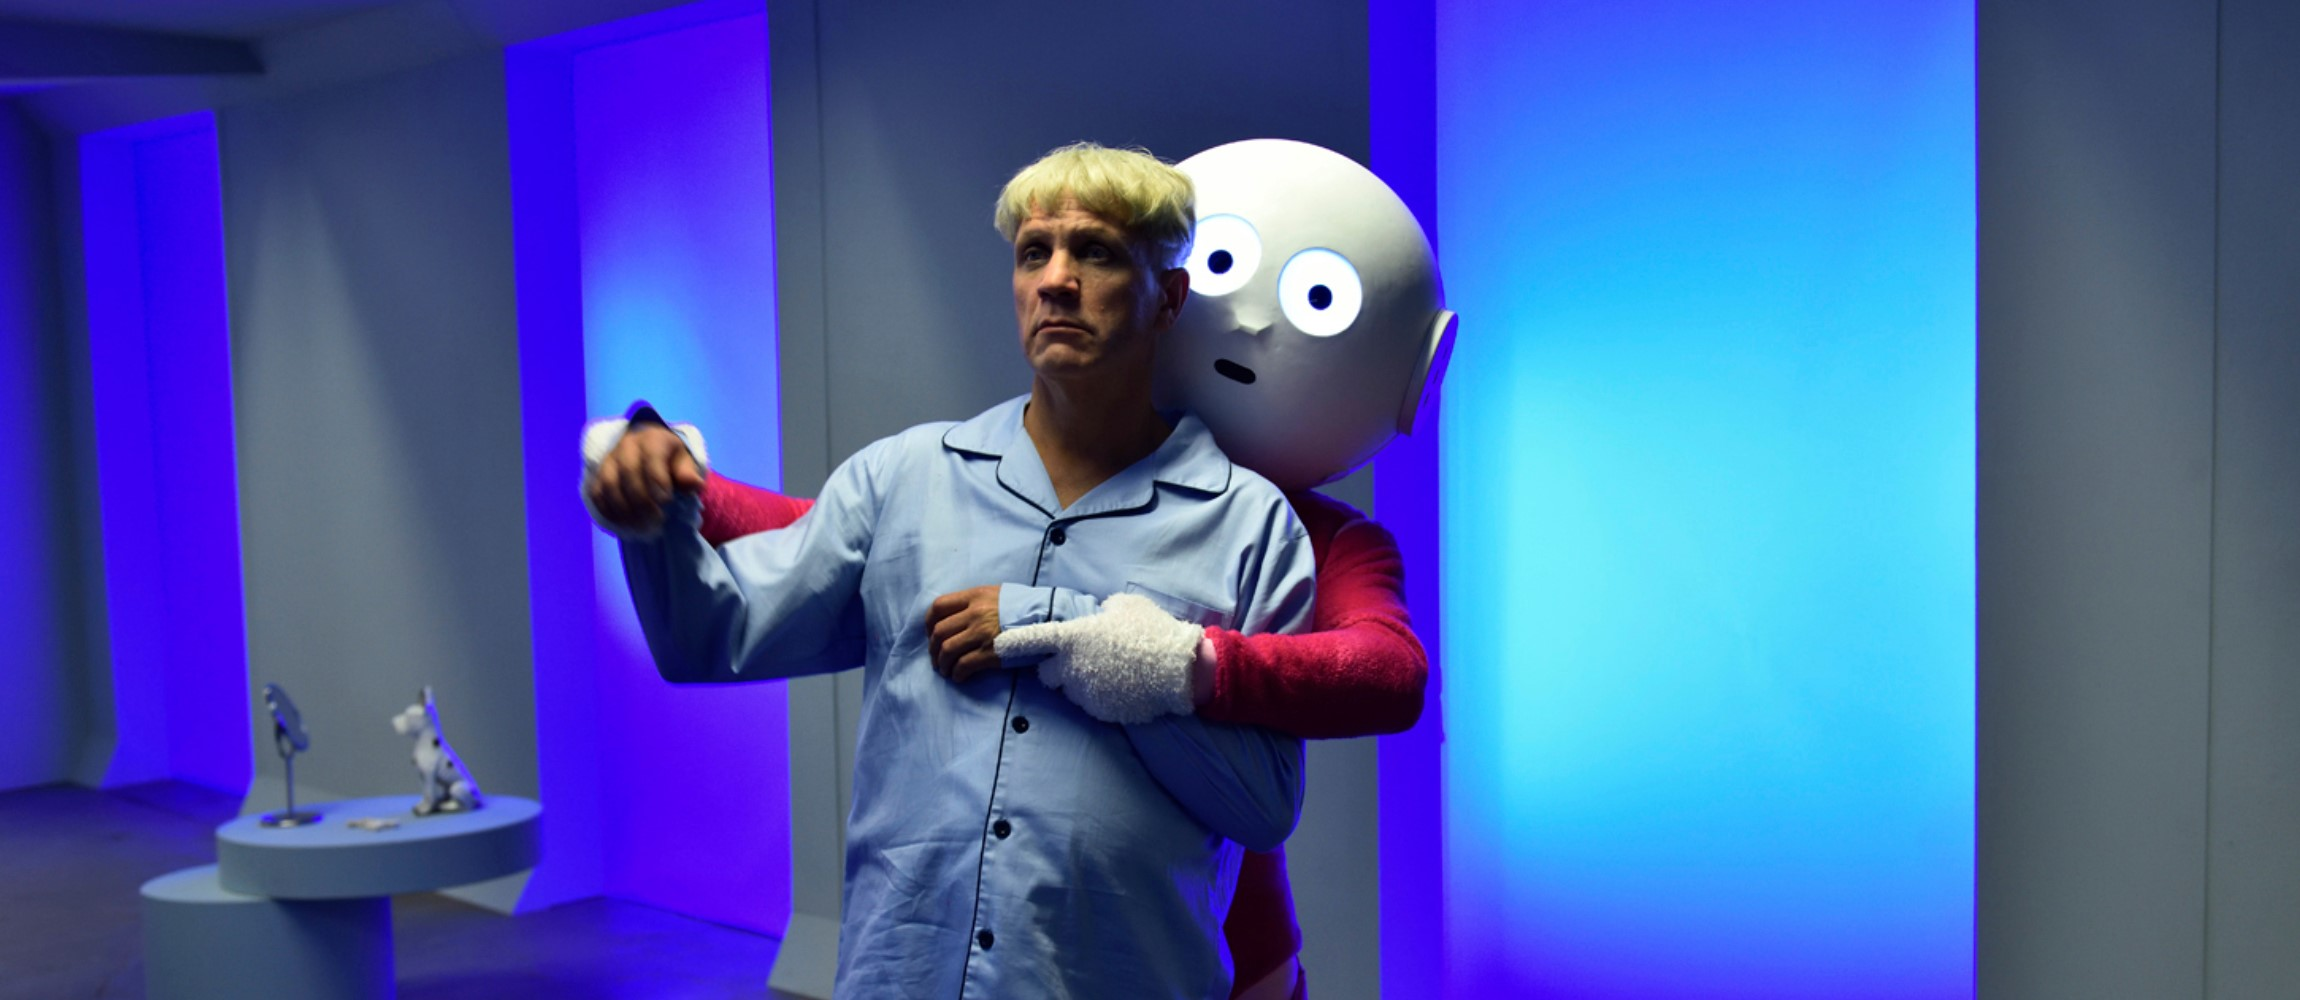 A man is held by a large doll with wide eyes. The room they inhabit is blue and modern.